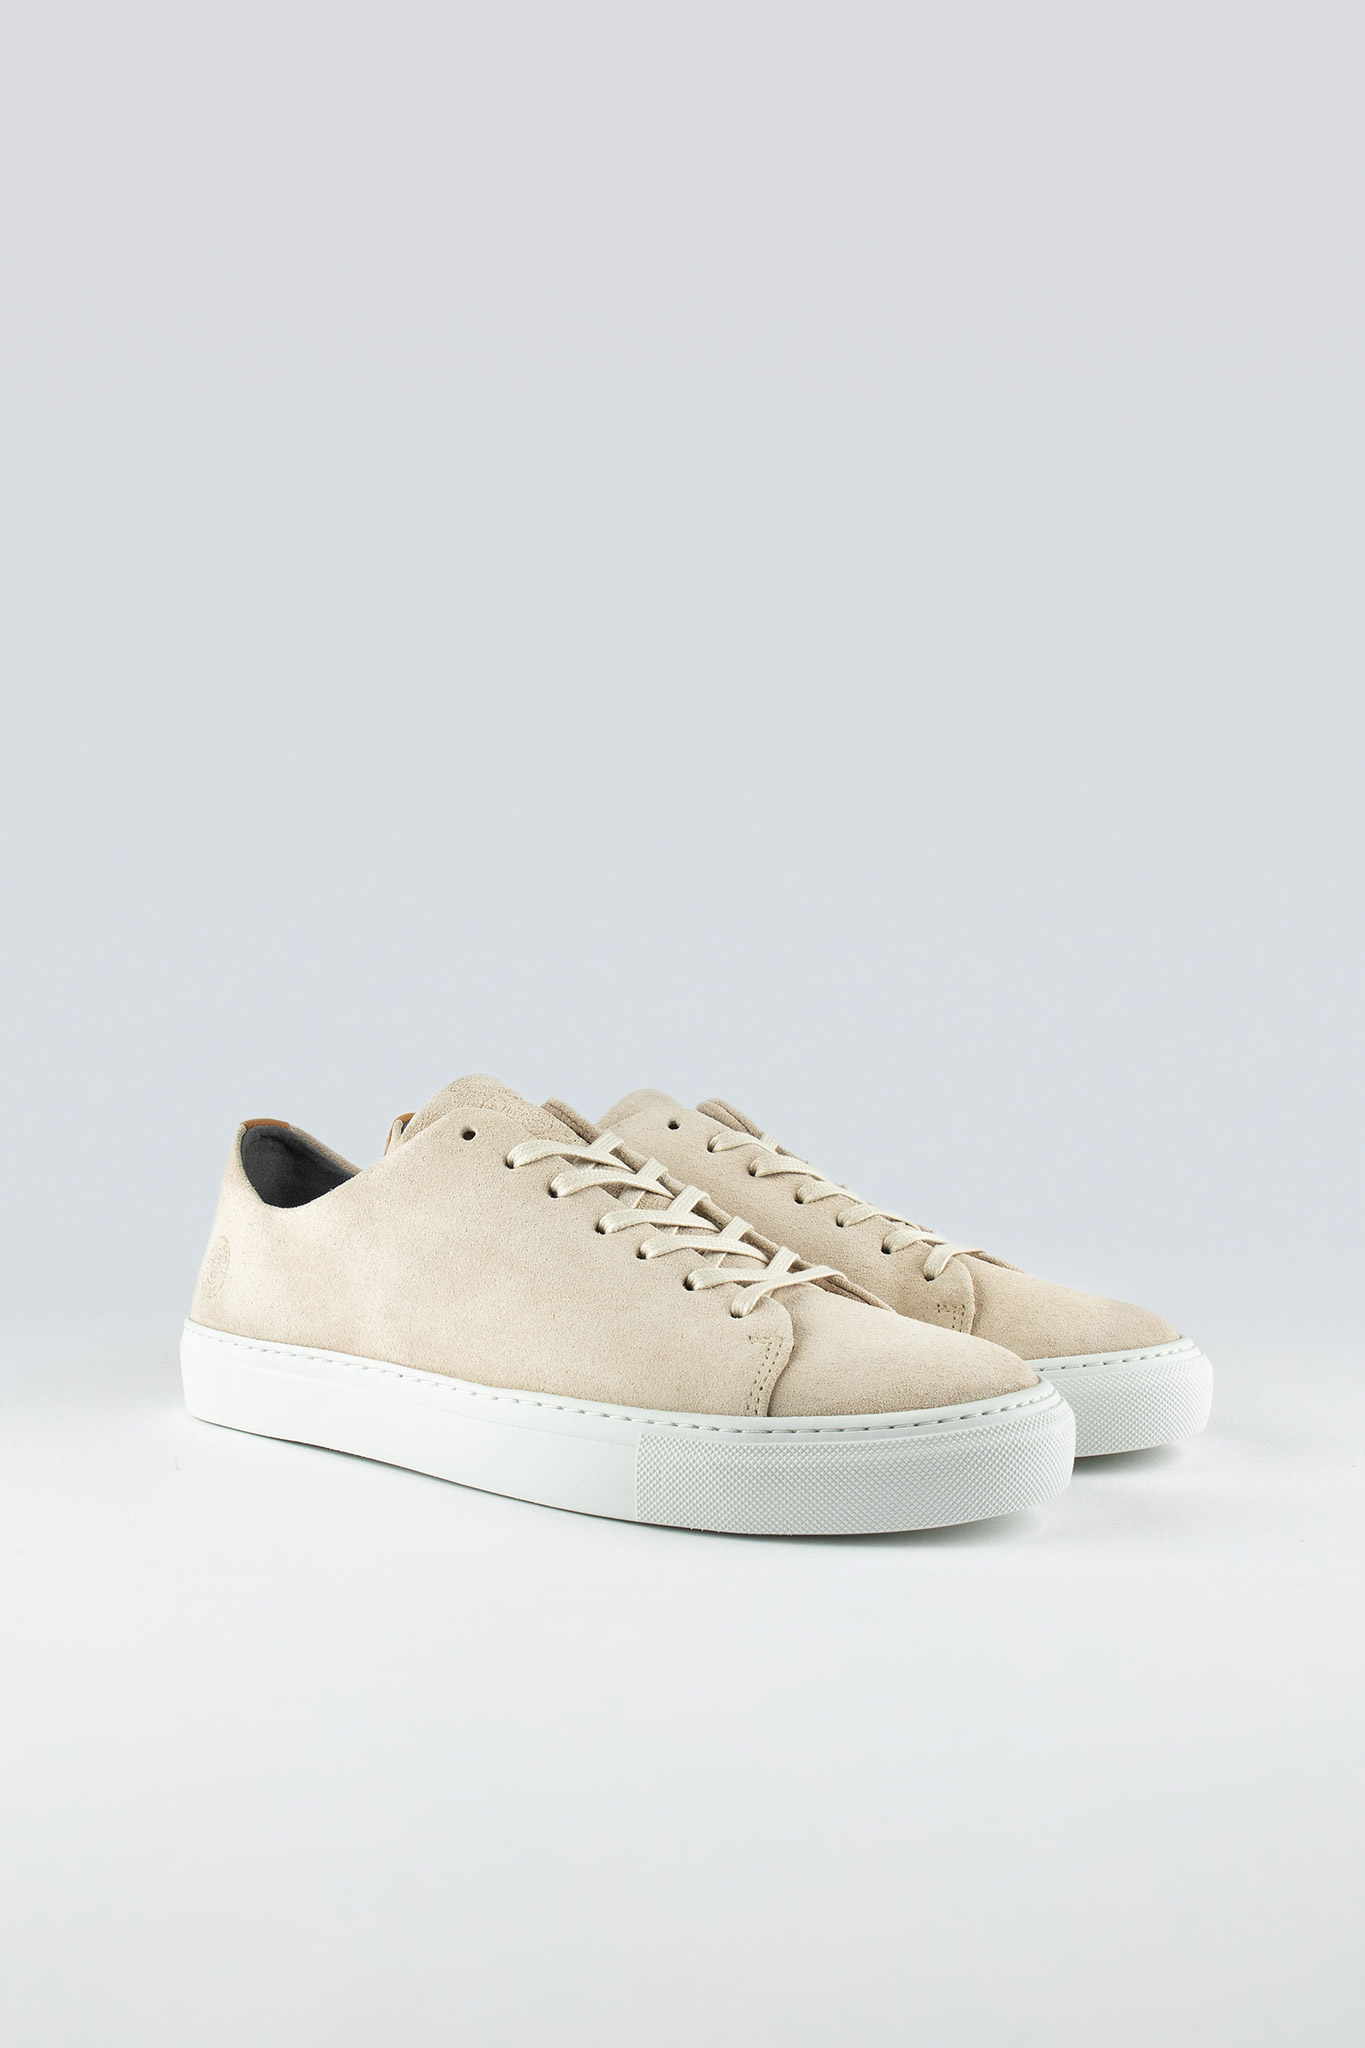 Less Suede Lt Beige